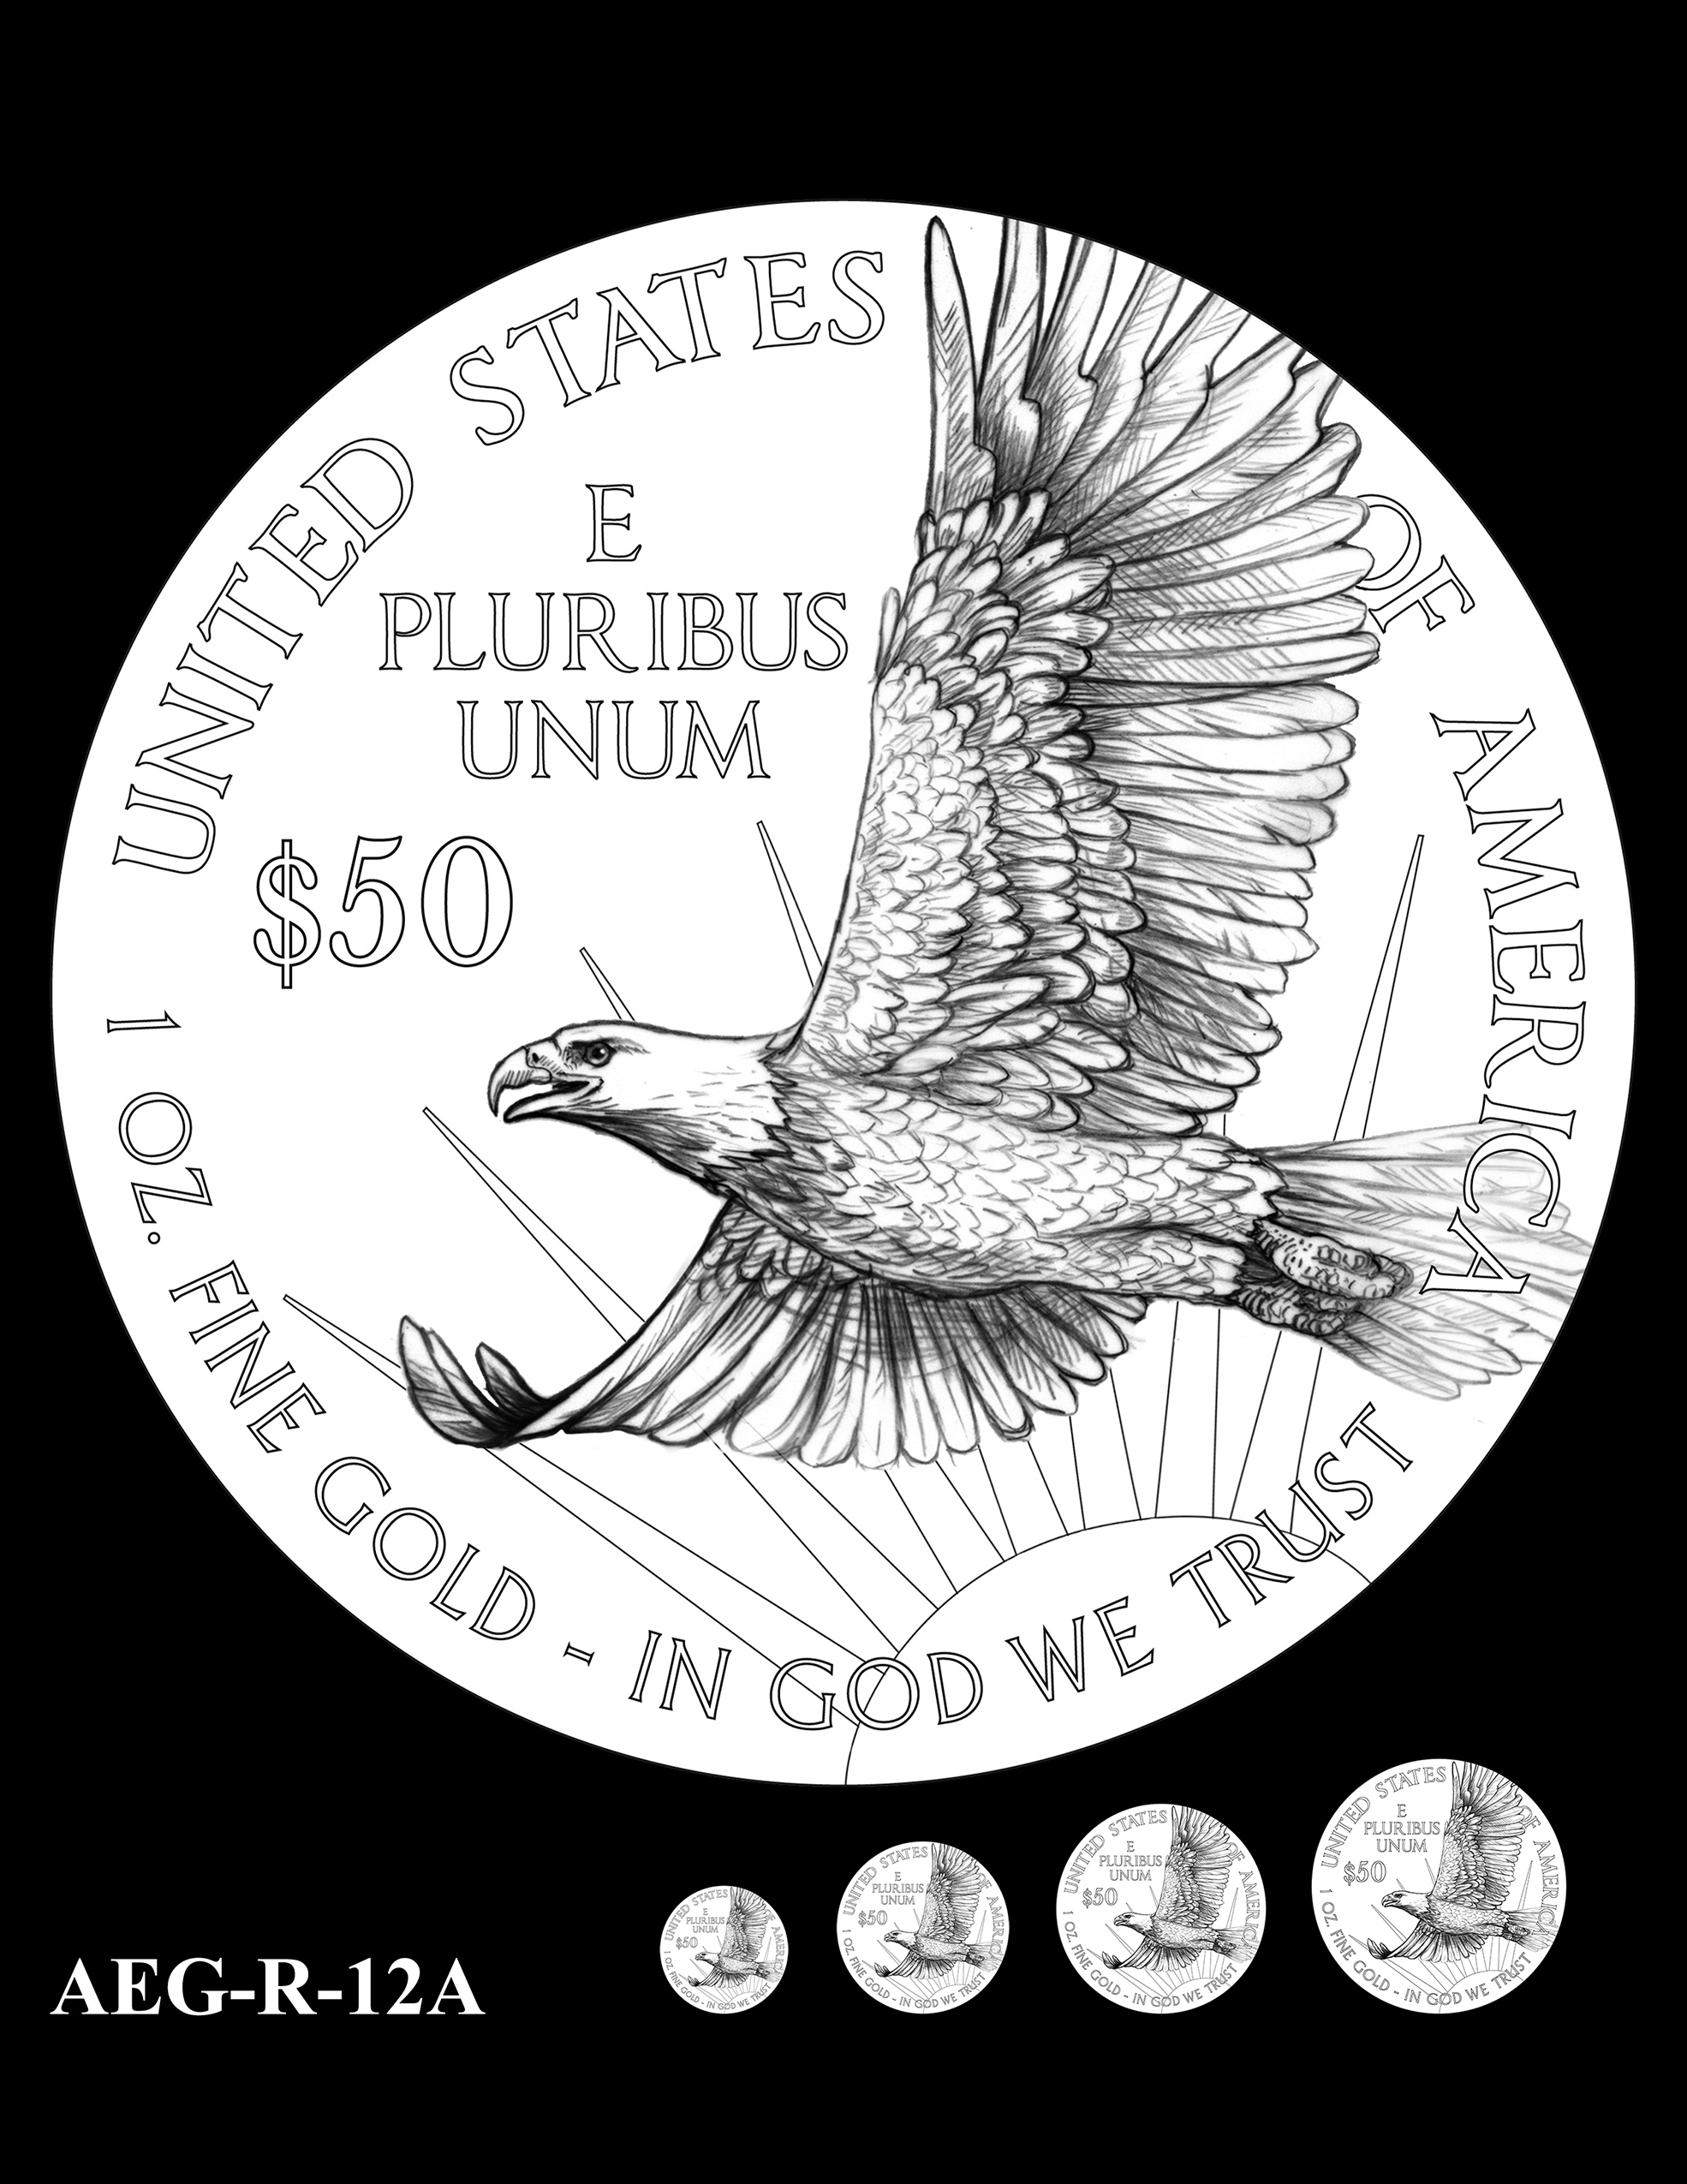 AEG-R-12A -- American Eagle Proof and Bullion Gold Coin - Reverse